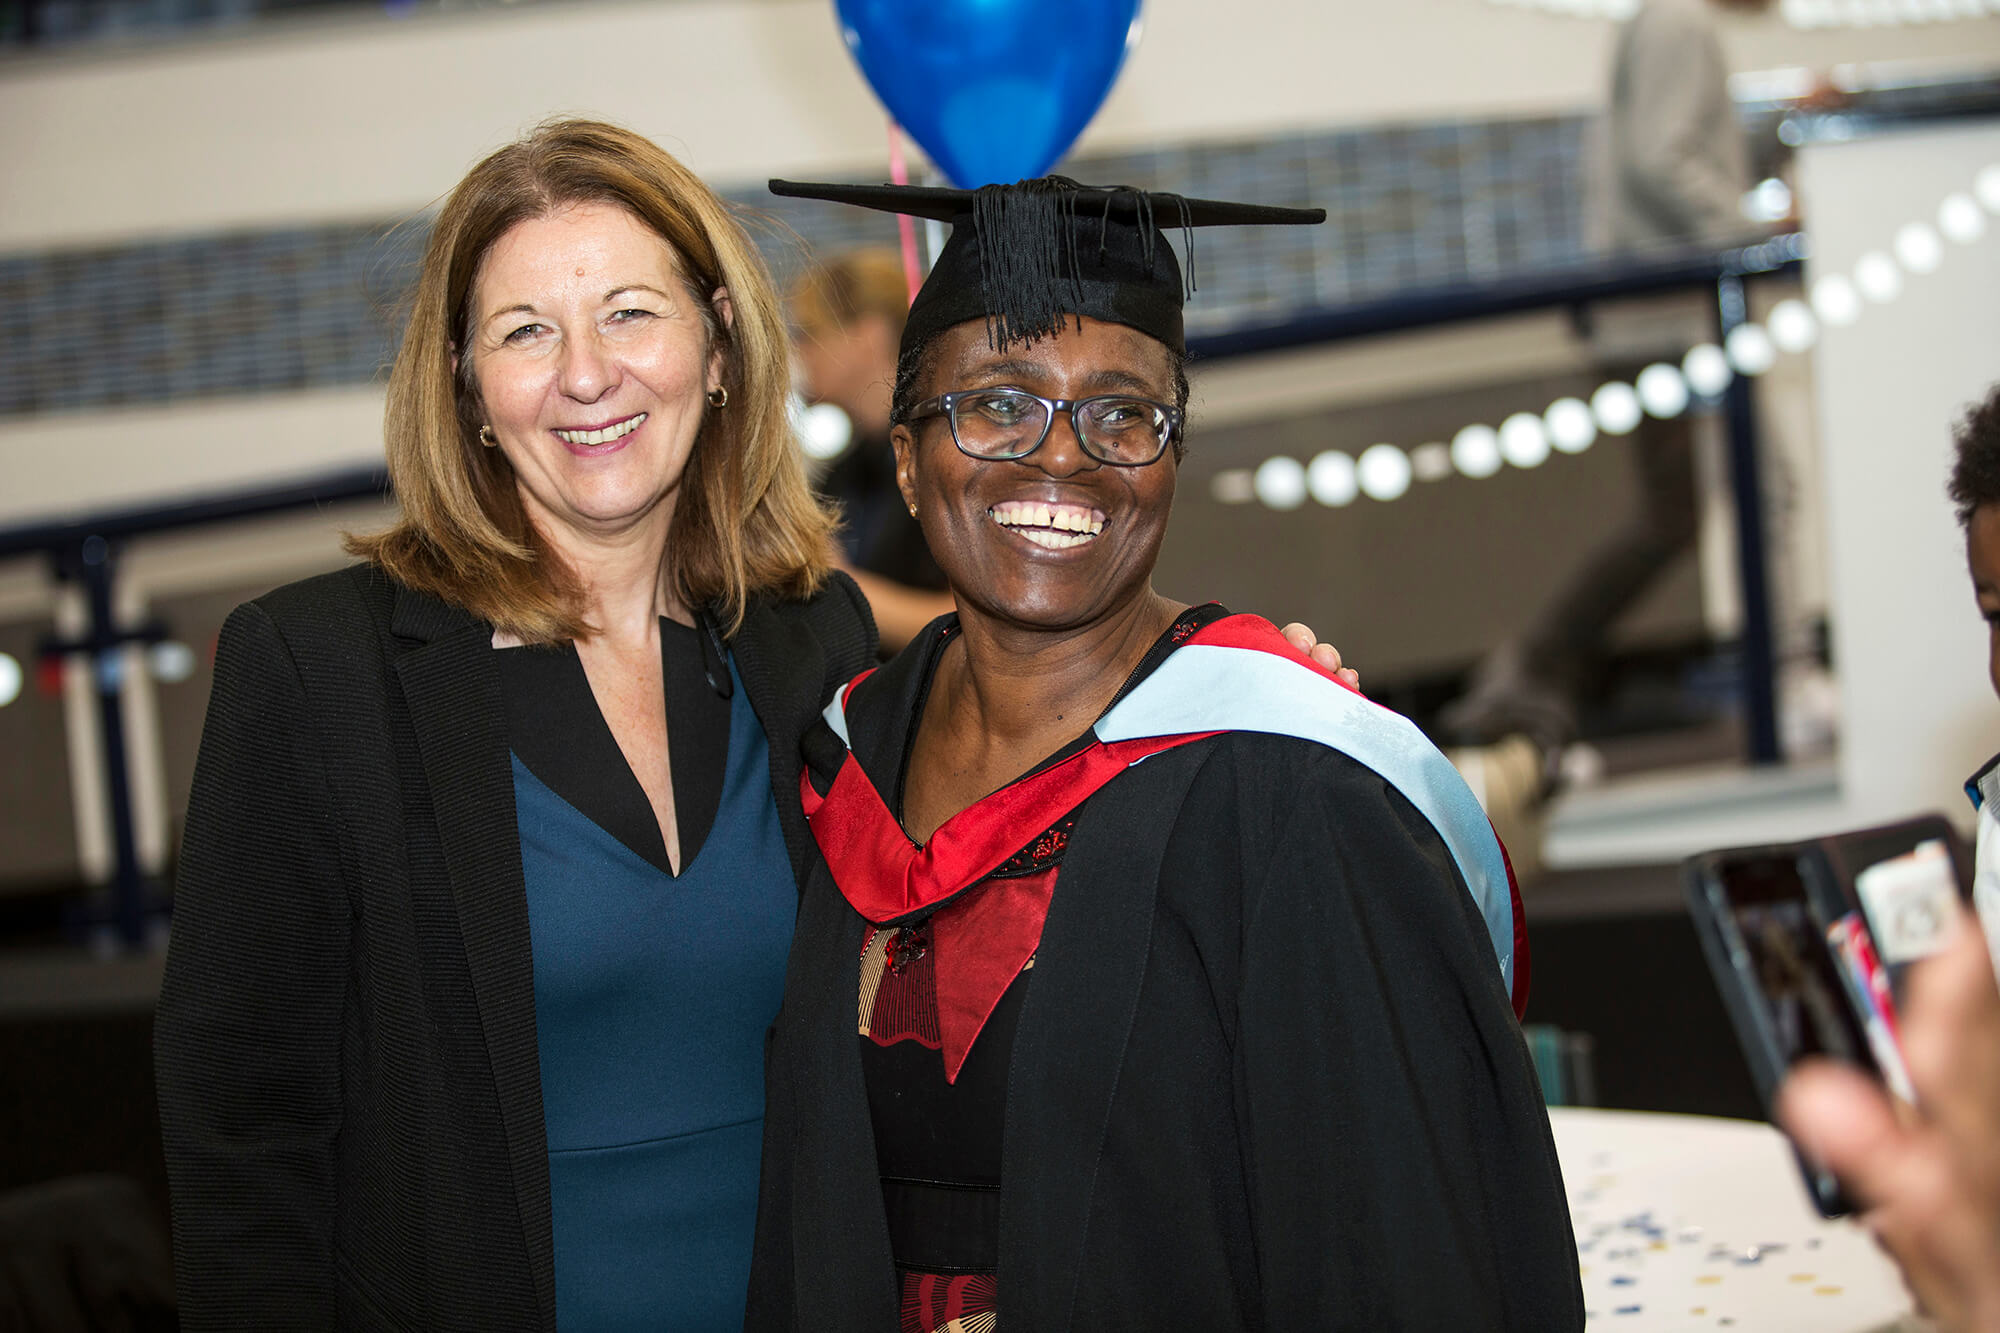 Online student Thobekile Ncube stood with Julie Stone at her graduation reception